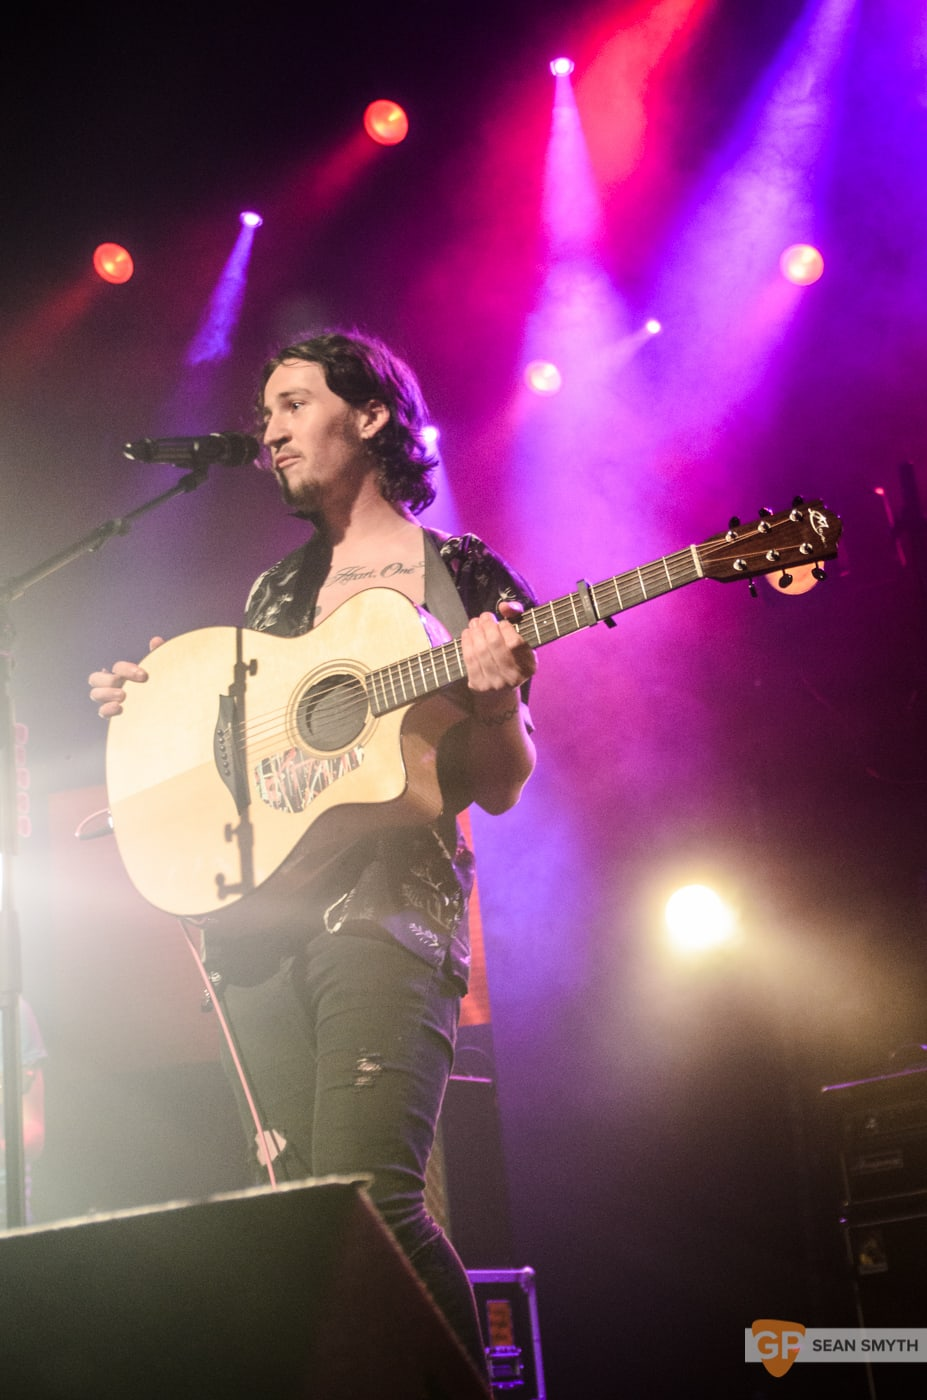 picture-this-at-the-olympia-theatre-by-sean-smyth-2-11-16-9-of-20